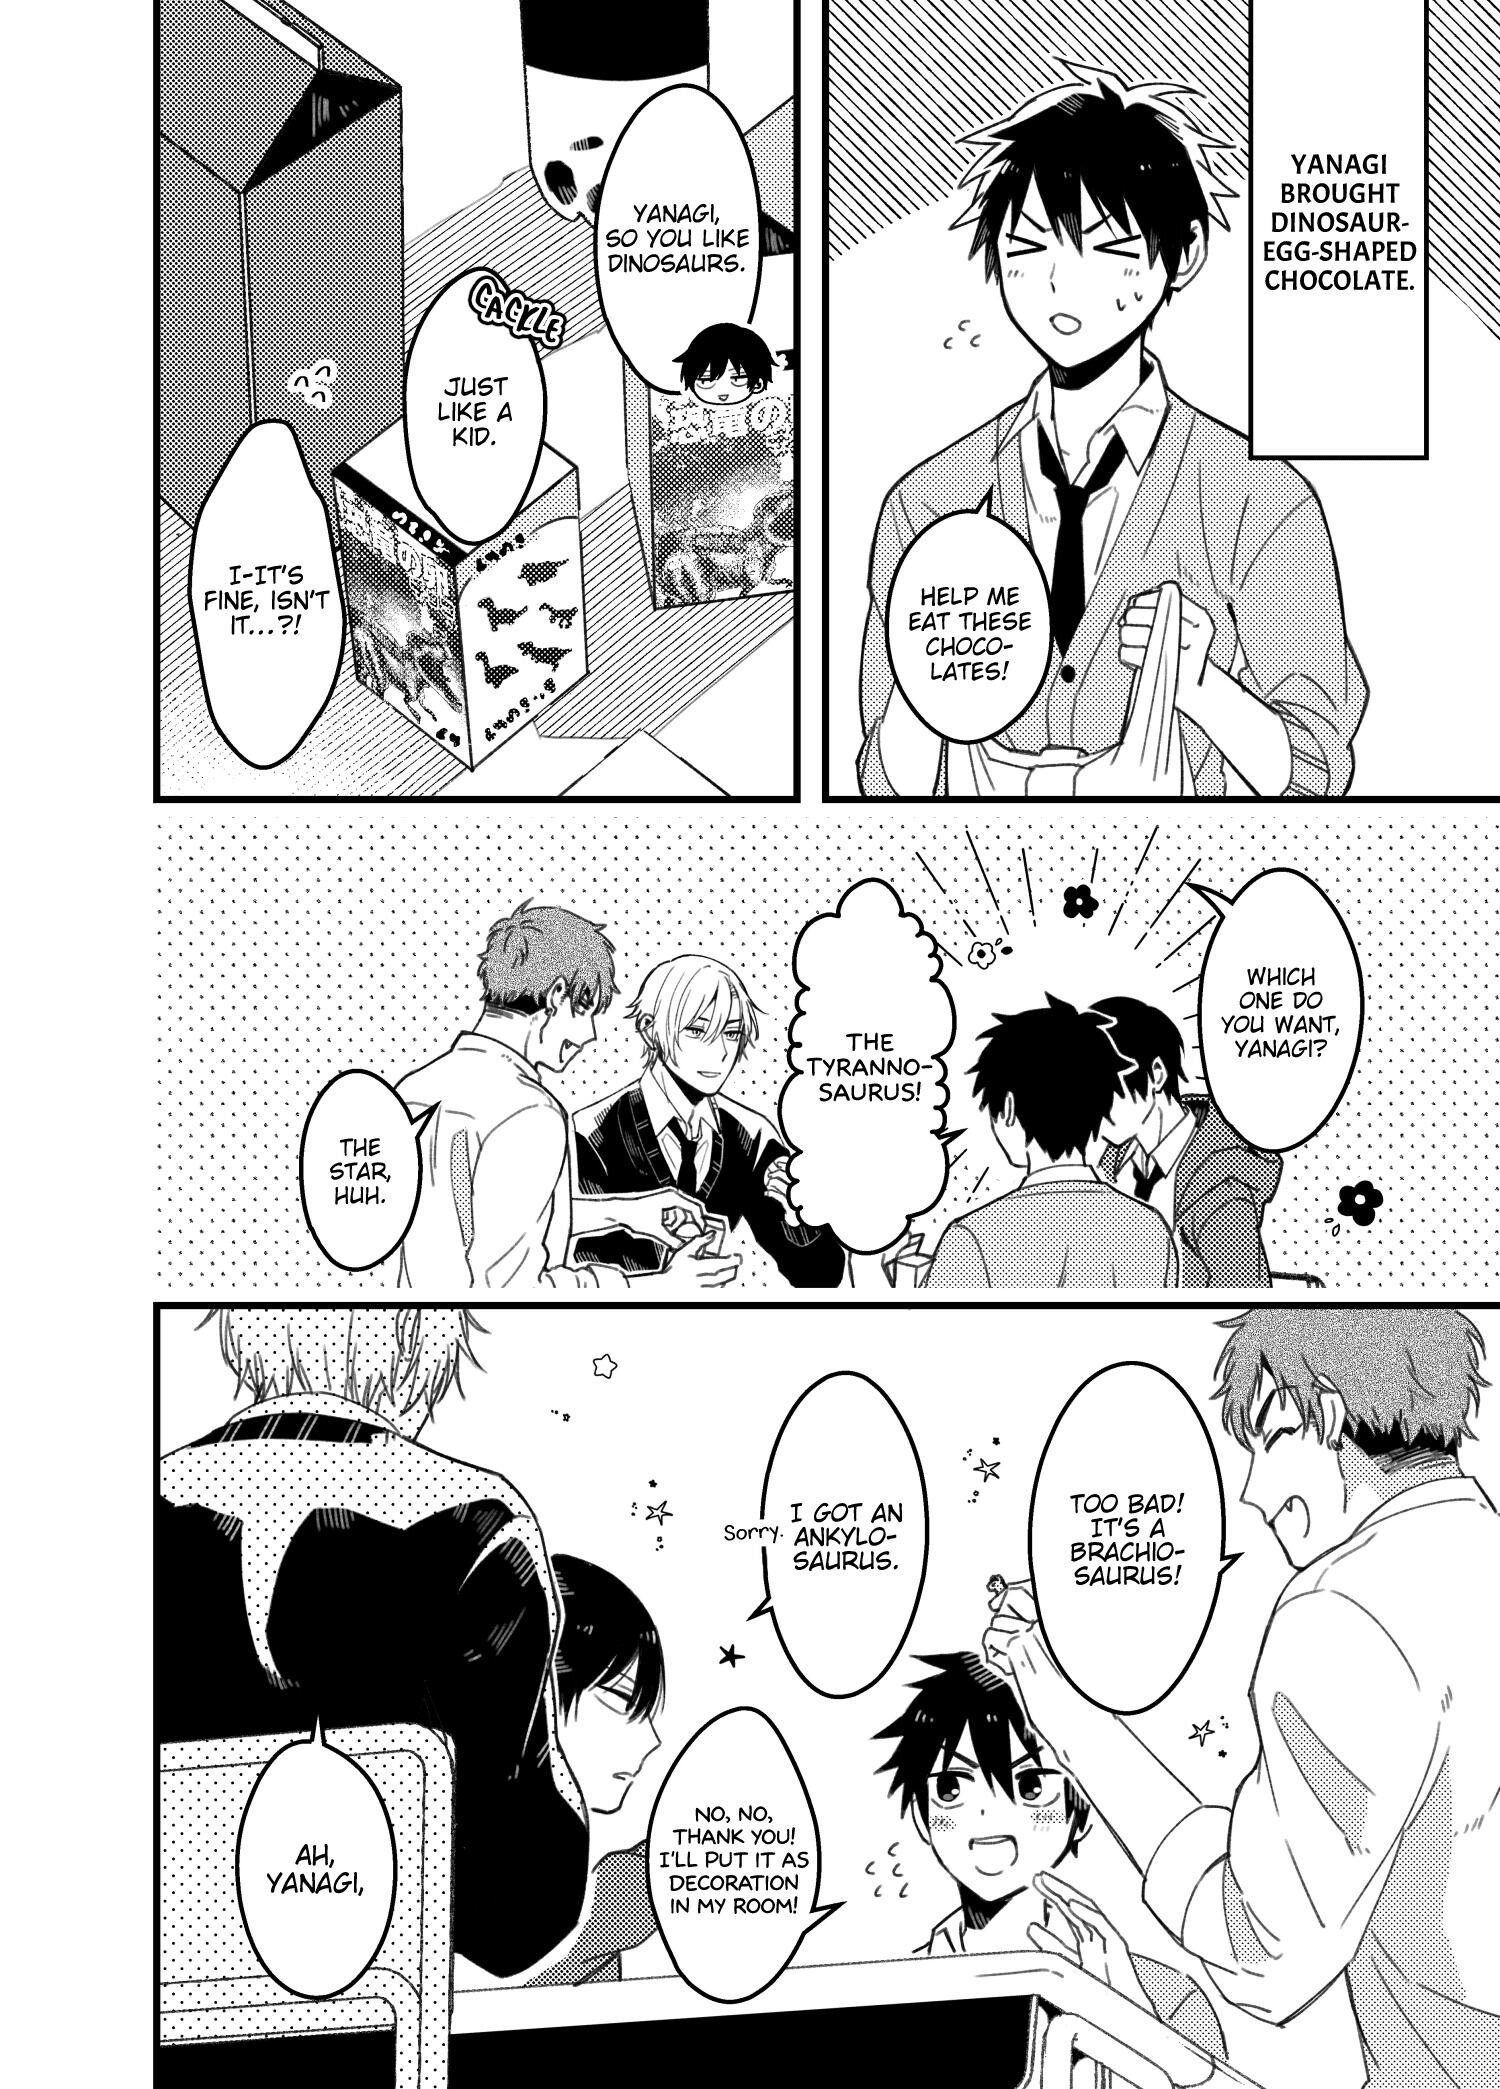 A World Where Everything Definitely Becomes Bl Vs. The Man Who Definitely Doesn't Want To Be In A Bl Volume 2 Chapter 35.6 : Twitter Comics page 18 - Mangakakalots.com